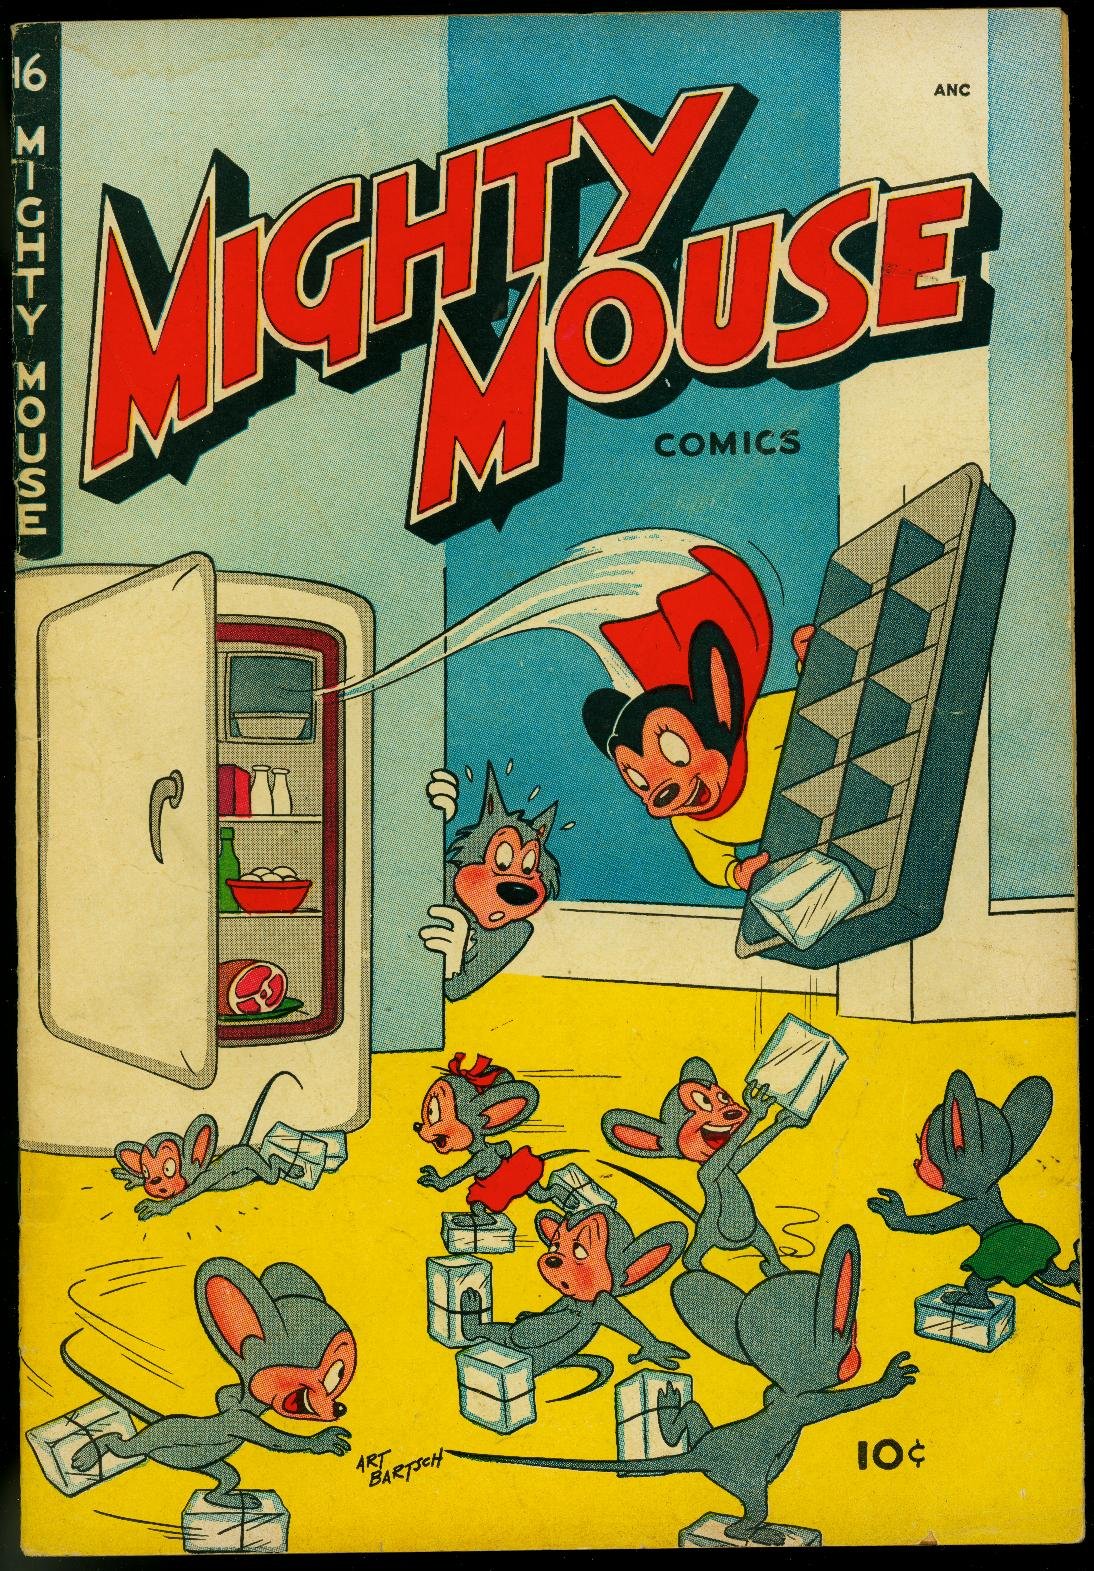 Mighty Mouse #16 1950- St John Golden Age- Funny Refrigerator cover VG Very Good Mice raid refrigerator cover. Comic is complete, no restoration. Condition: VG